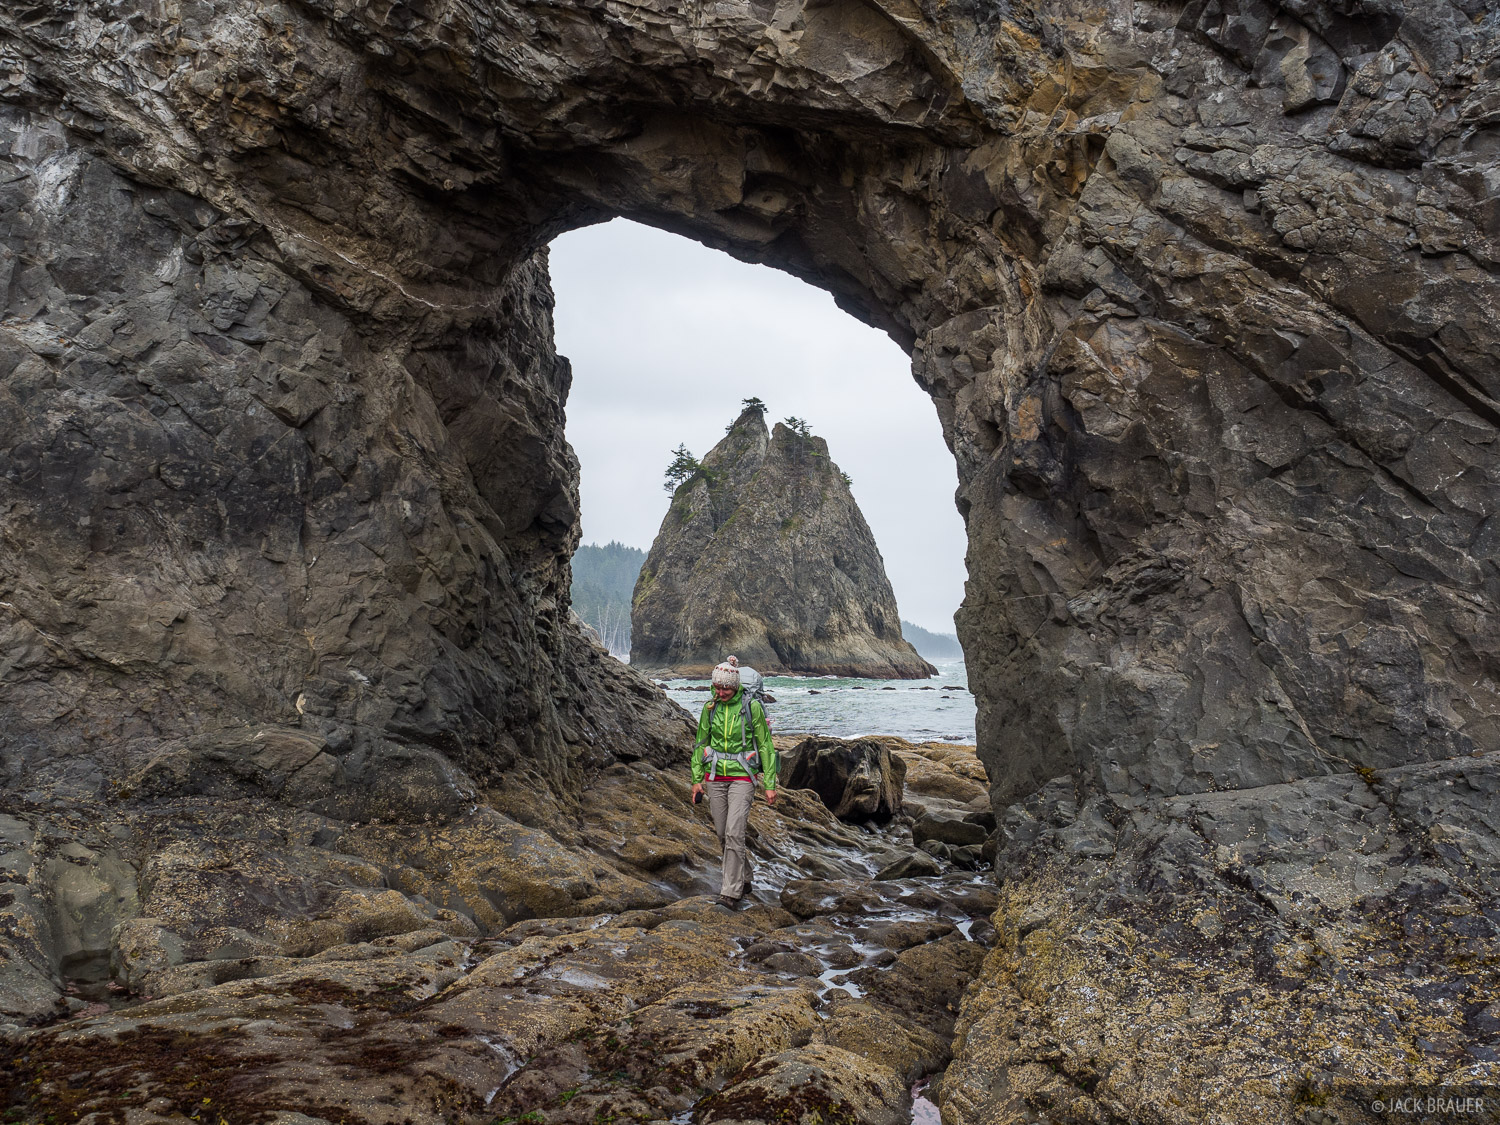 Olympic Peninsula, Washington, Olympic National Park, Hole in the Wall, Rialto Beach, hiking, photo